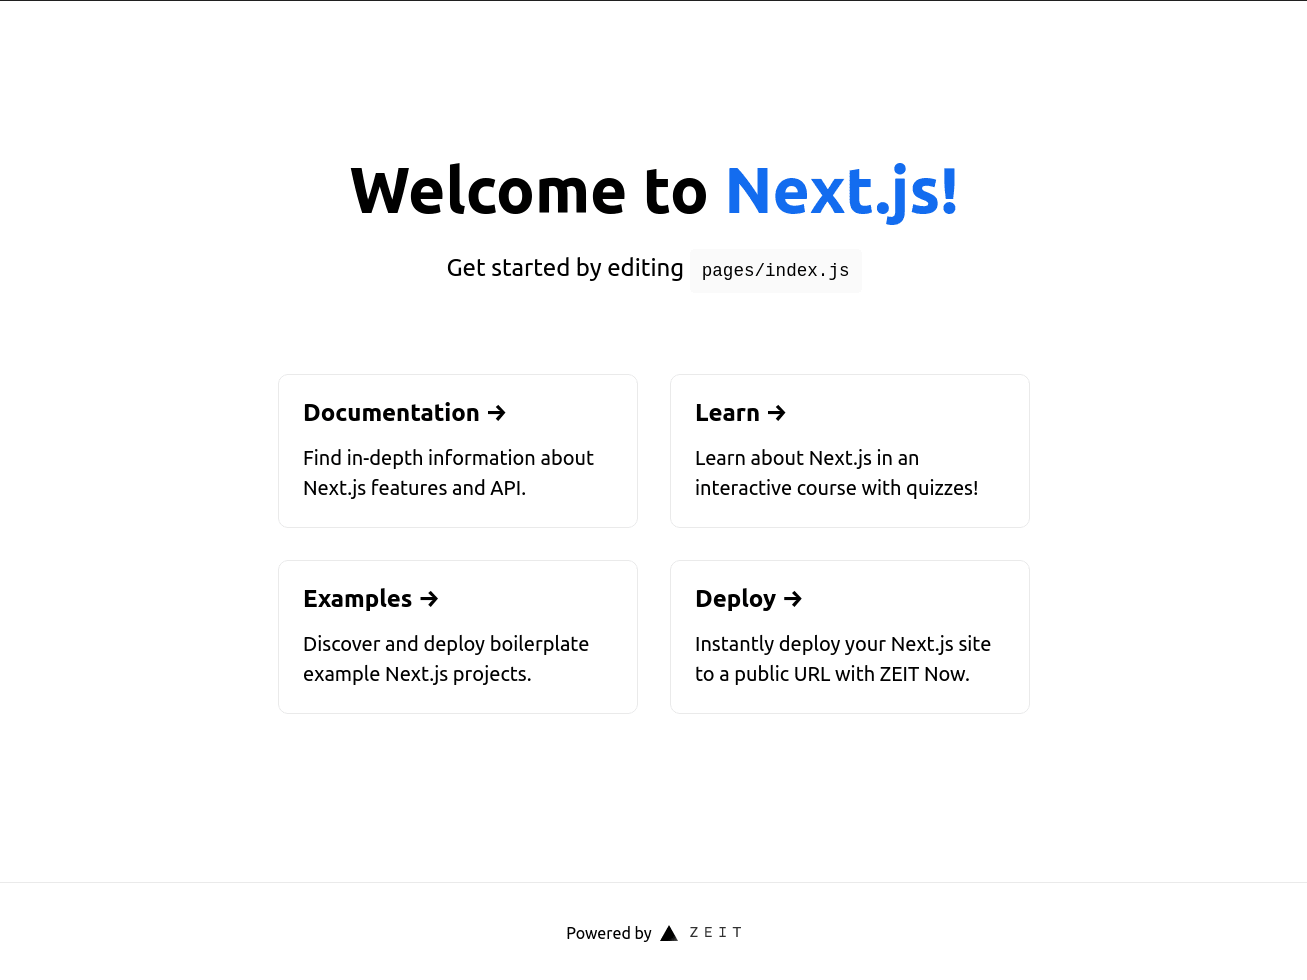 Initial Next.js screen